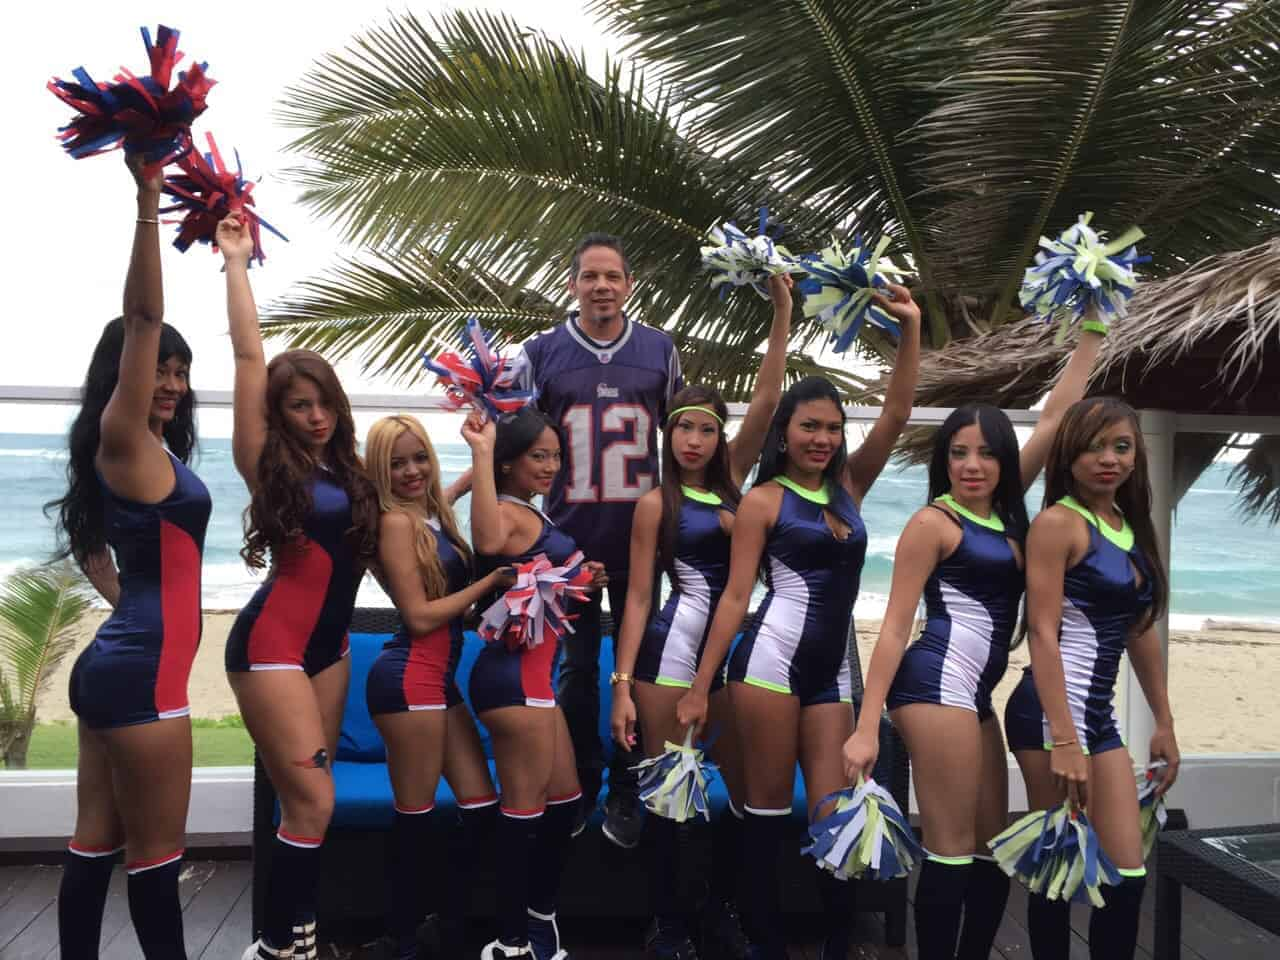 Will and his Super Bowl Cheerleaders